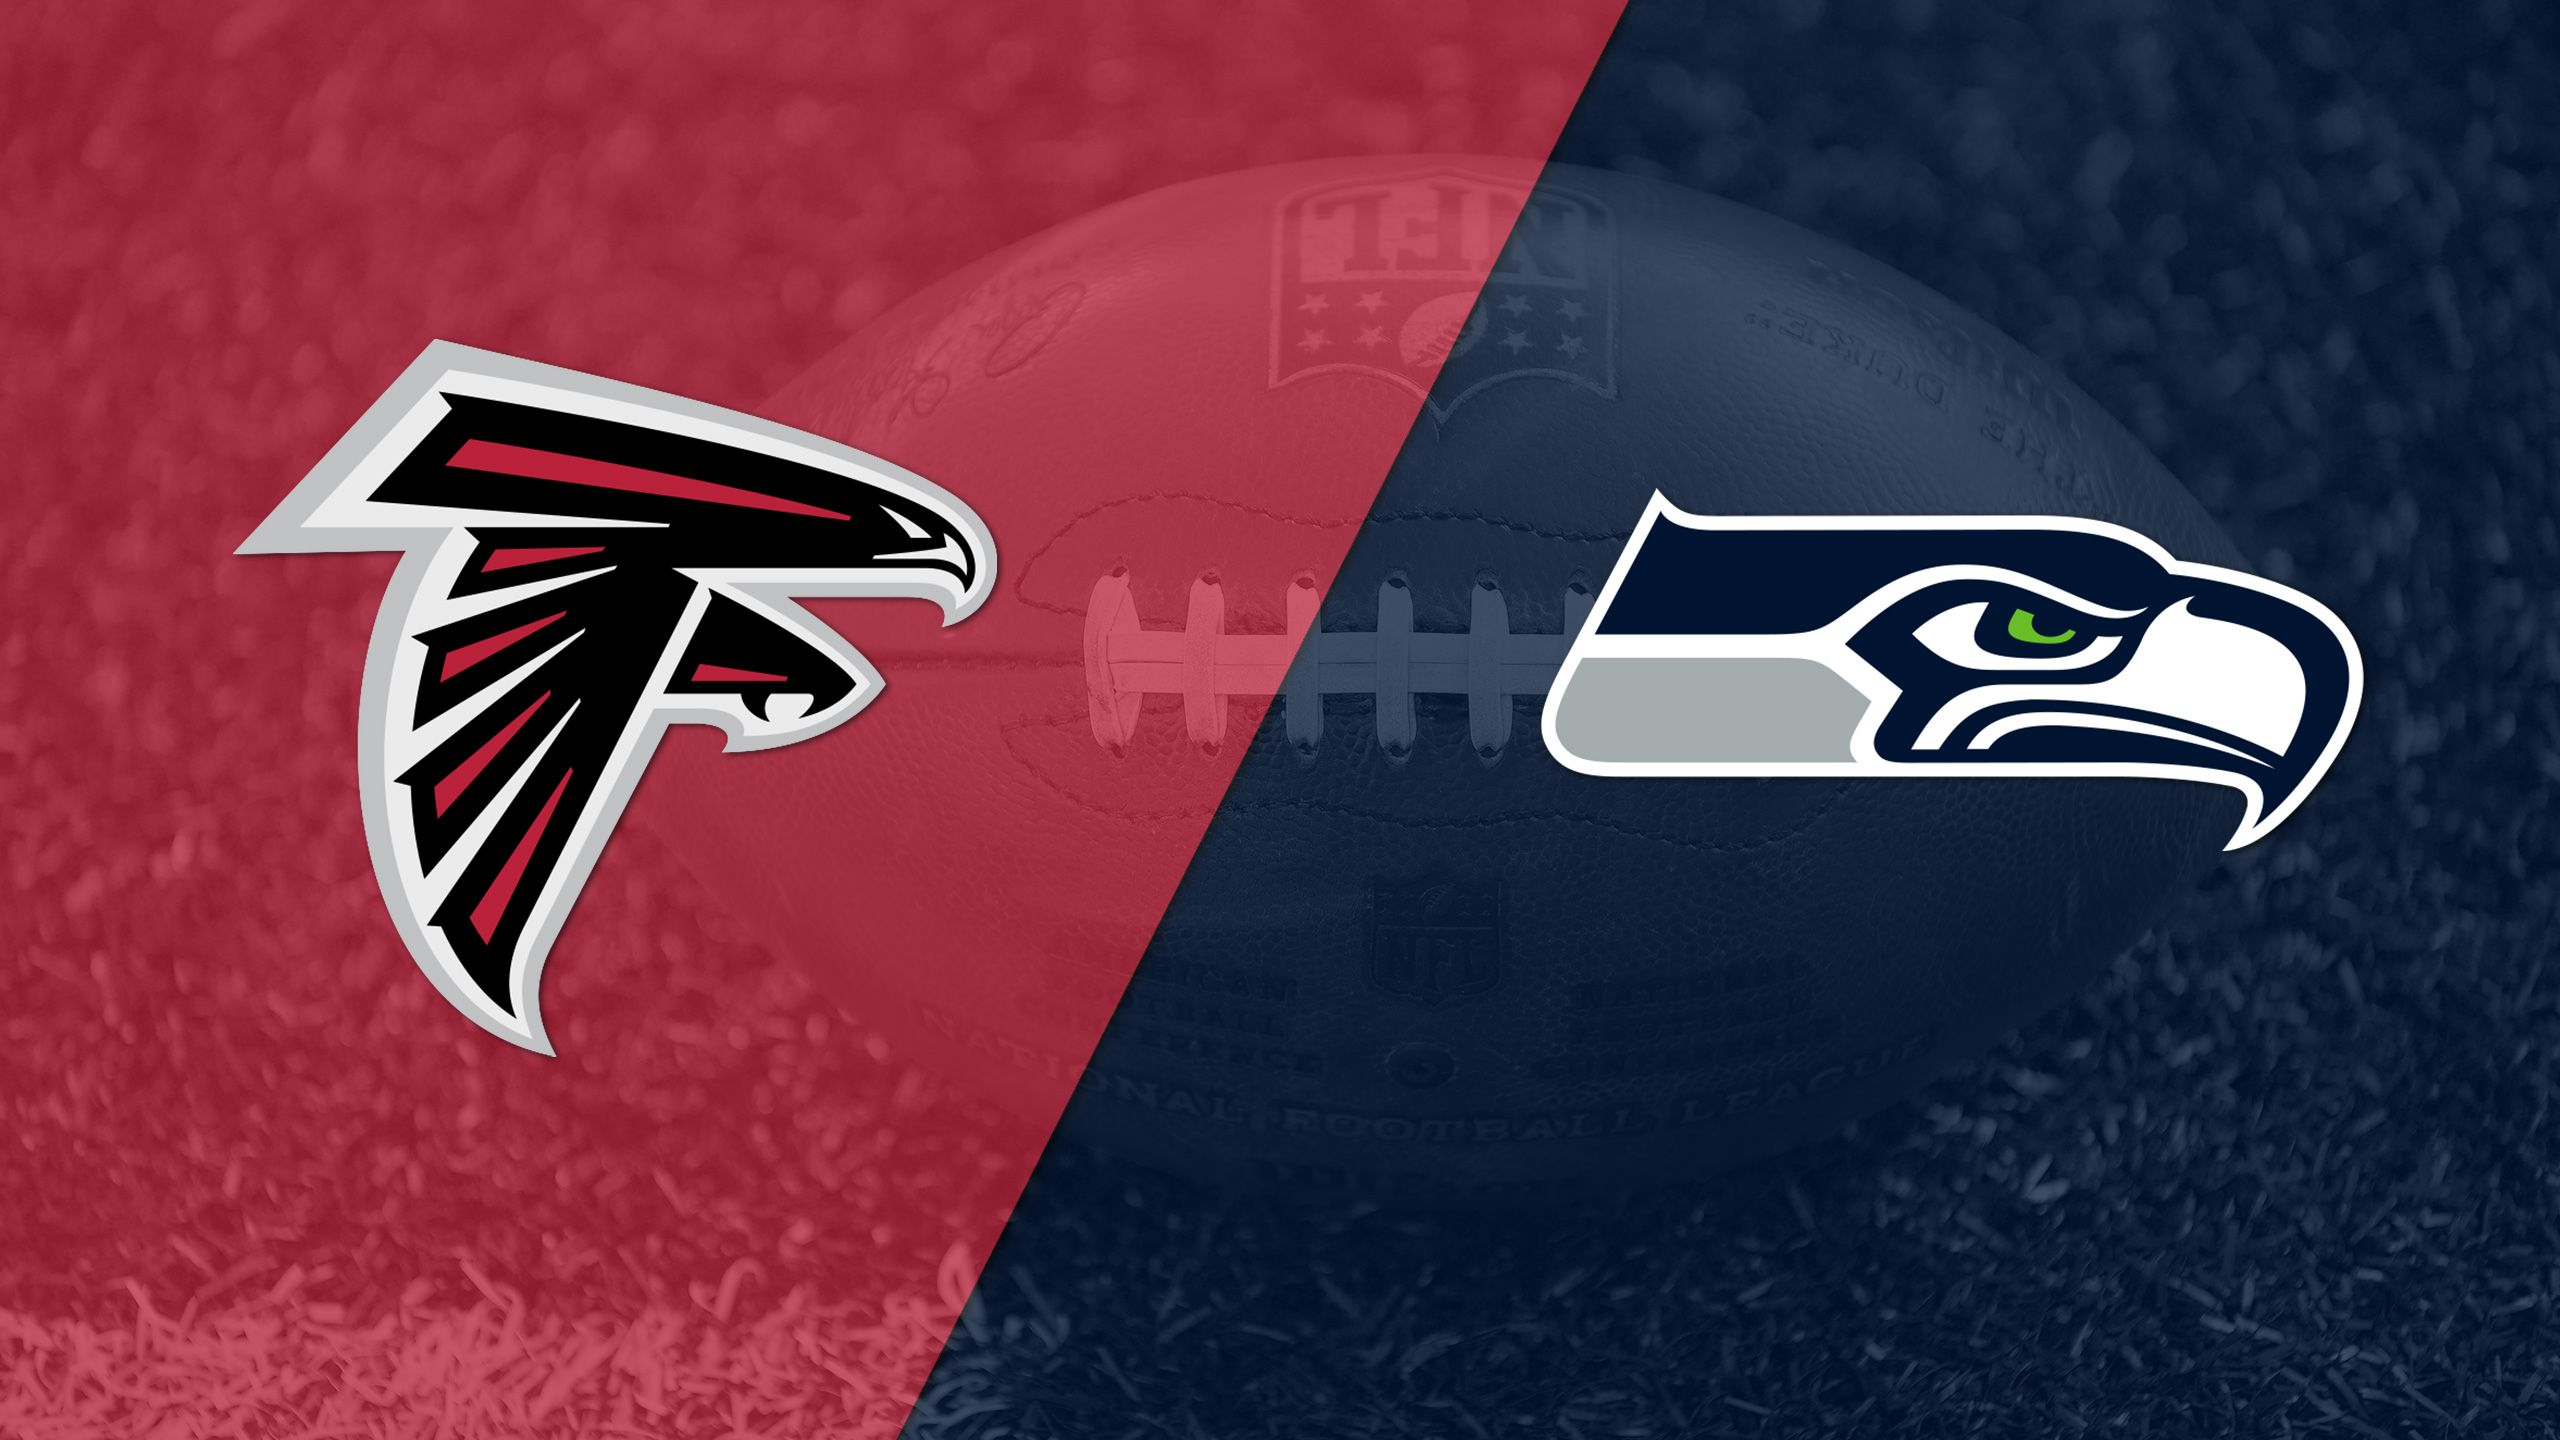 In Spanish - Atlanta Falcons vs. Seattle Seahawks